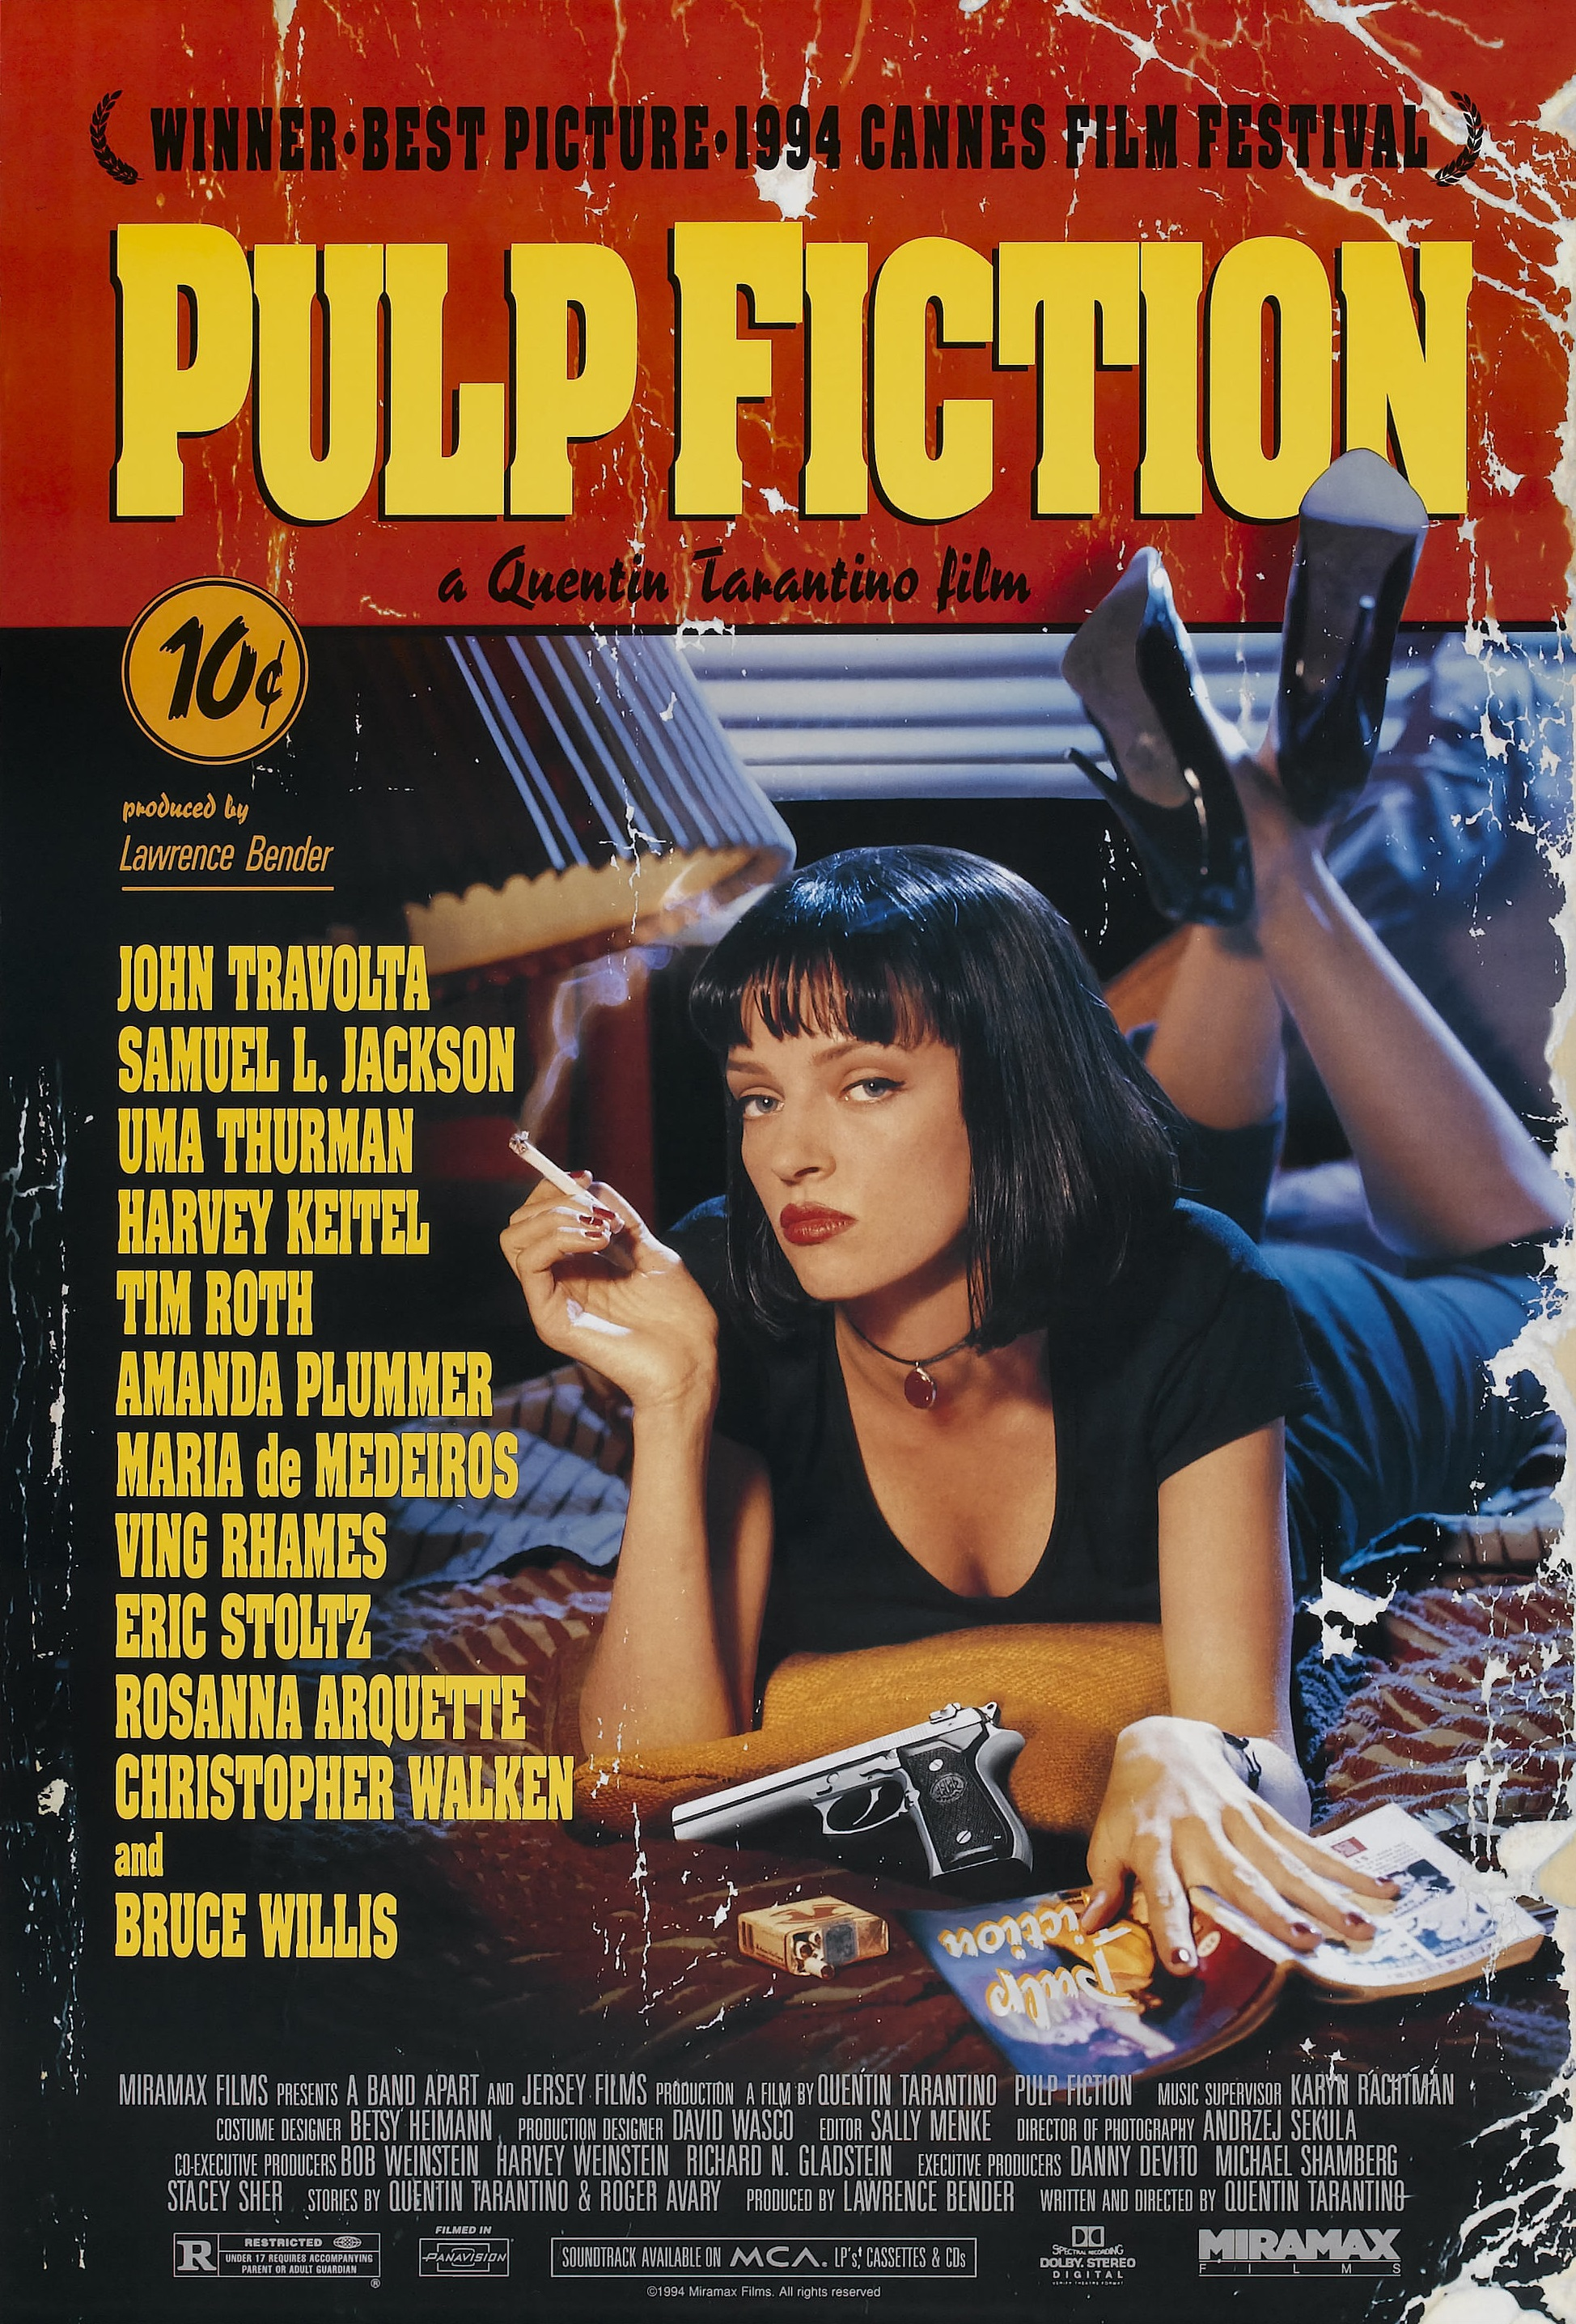 movie-poster-pulpfiction.jpg